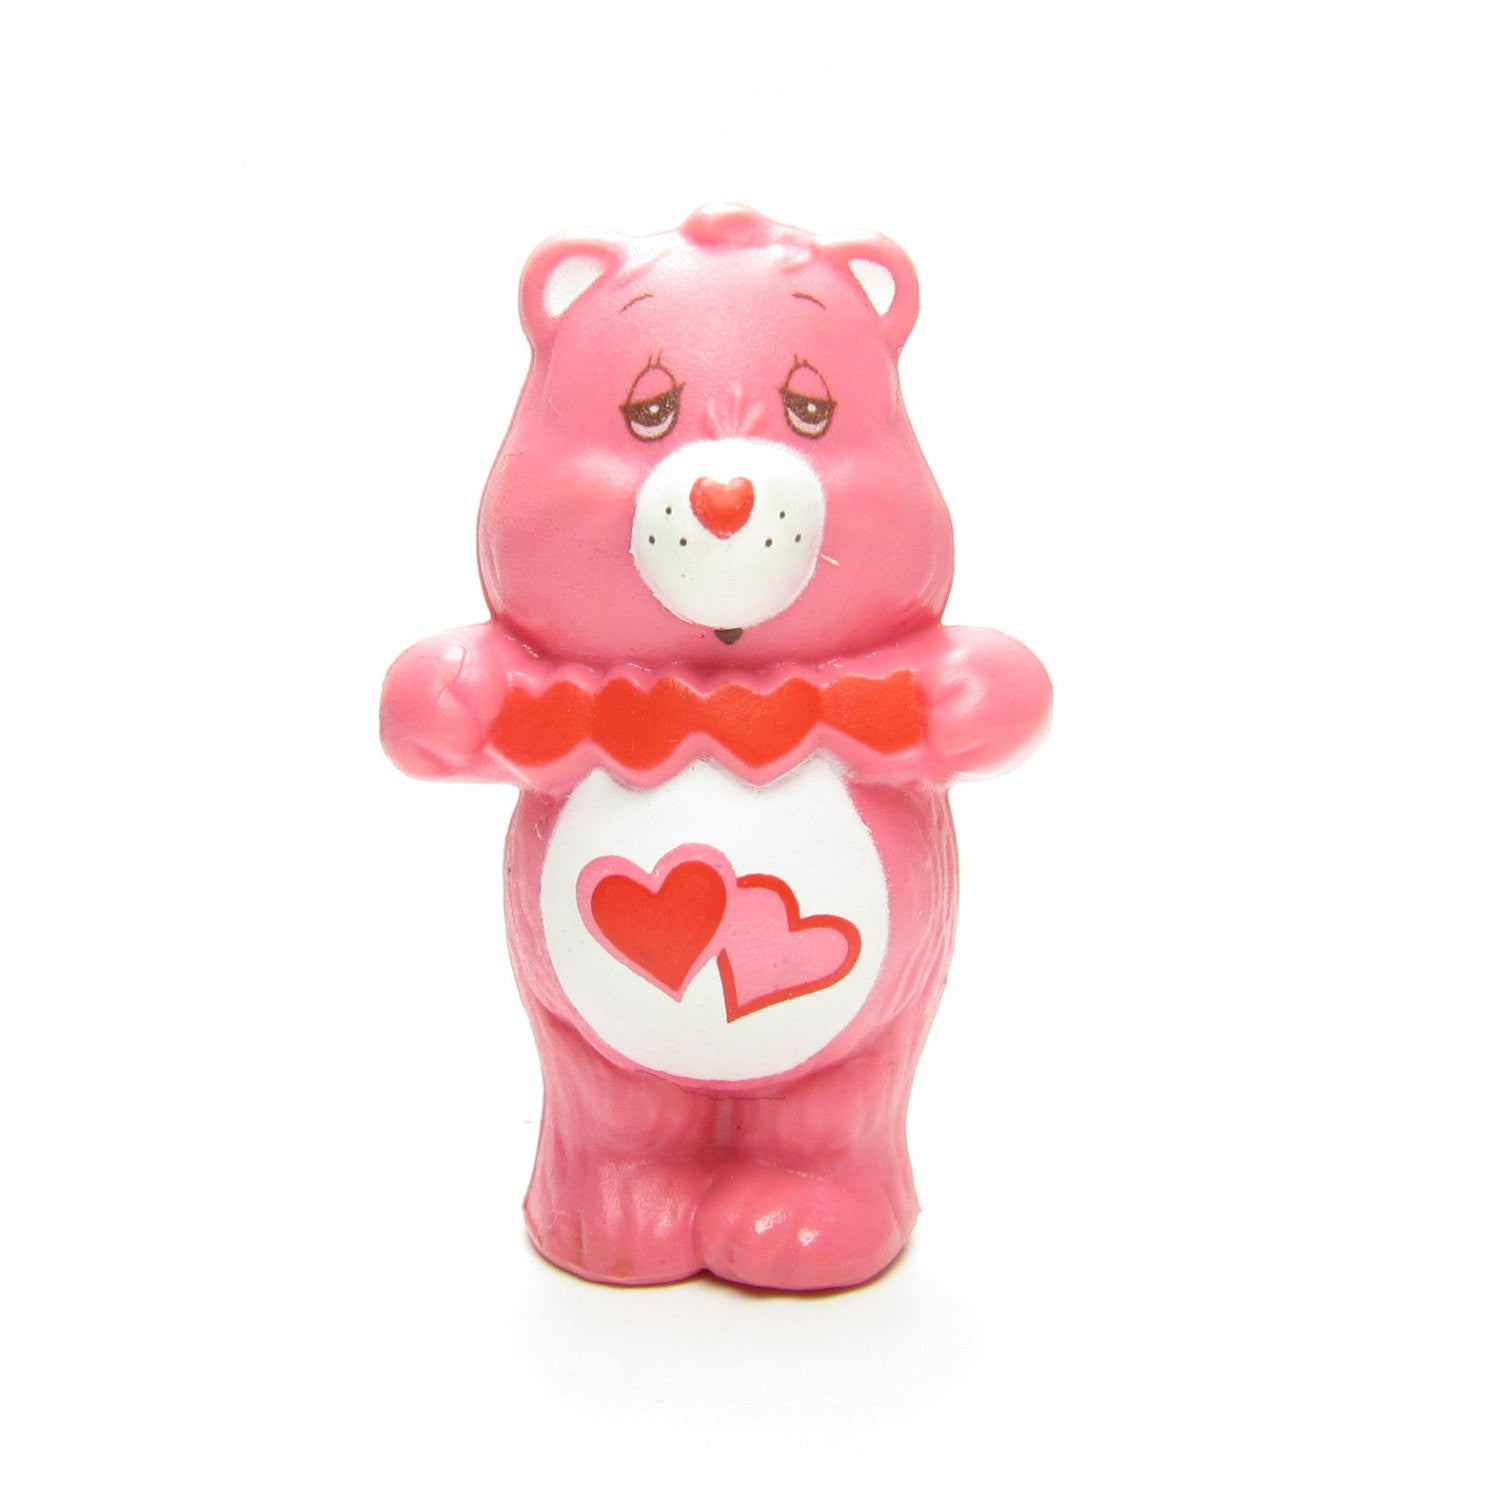 Love-a-lot Bear Holding Cut-Out Hearts miniature figurine